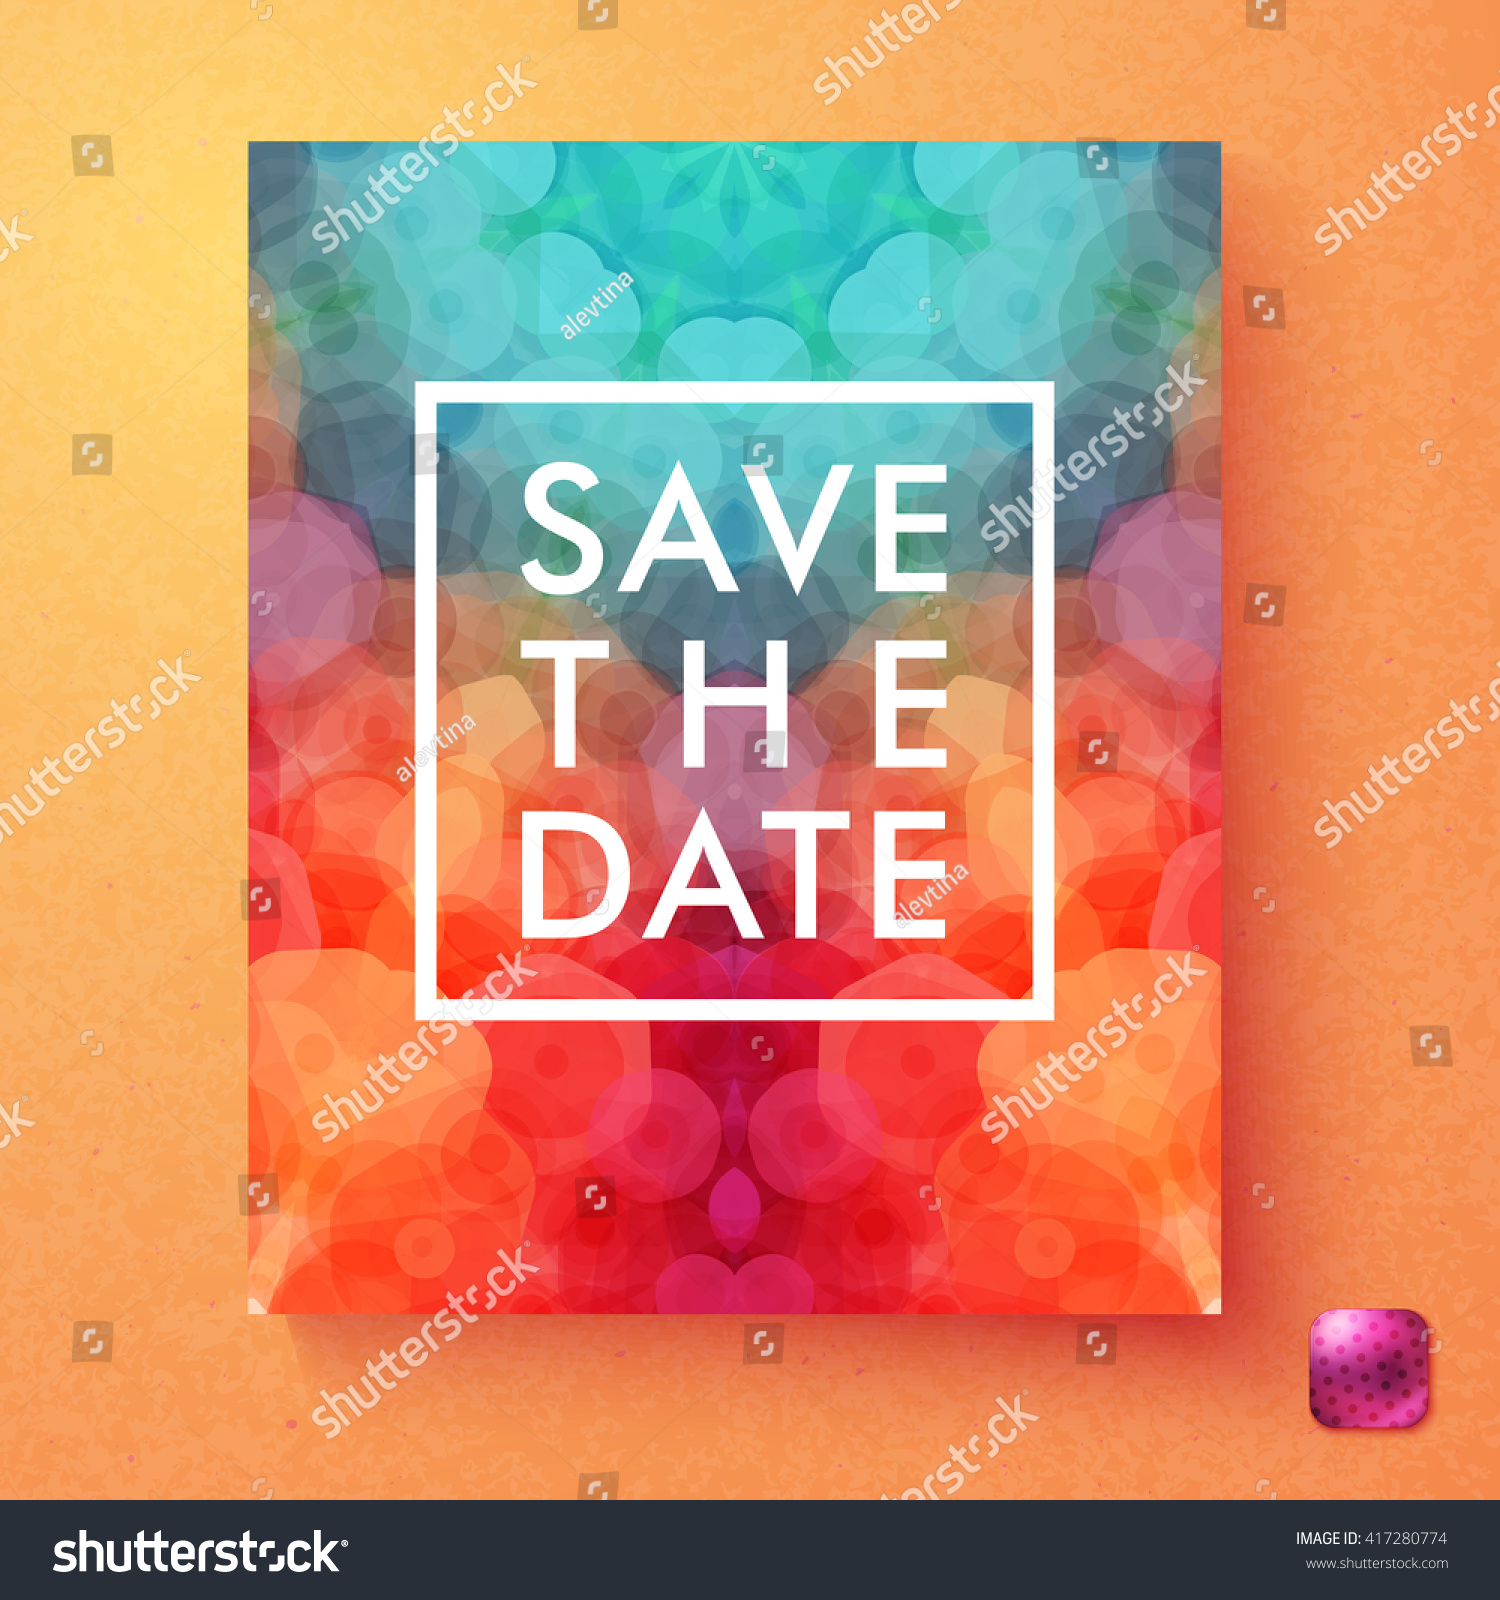 Bright Dynamic Vector Save Date Wedding Stock Vector (Royalty Free ...